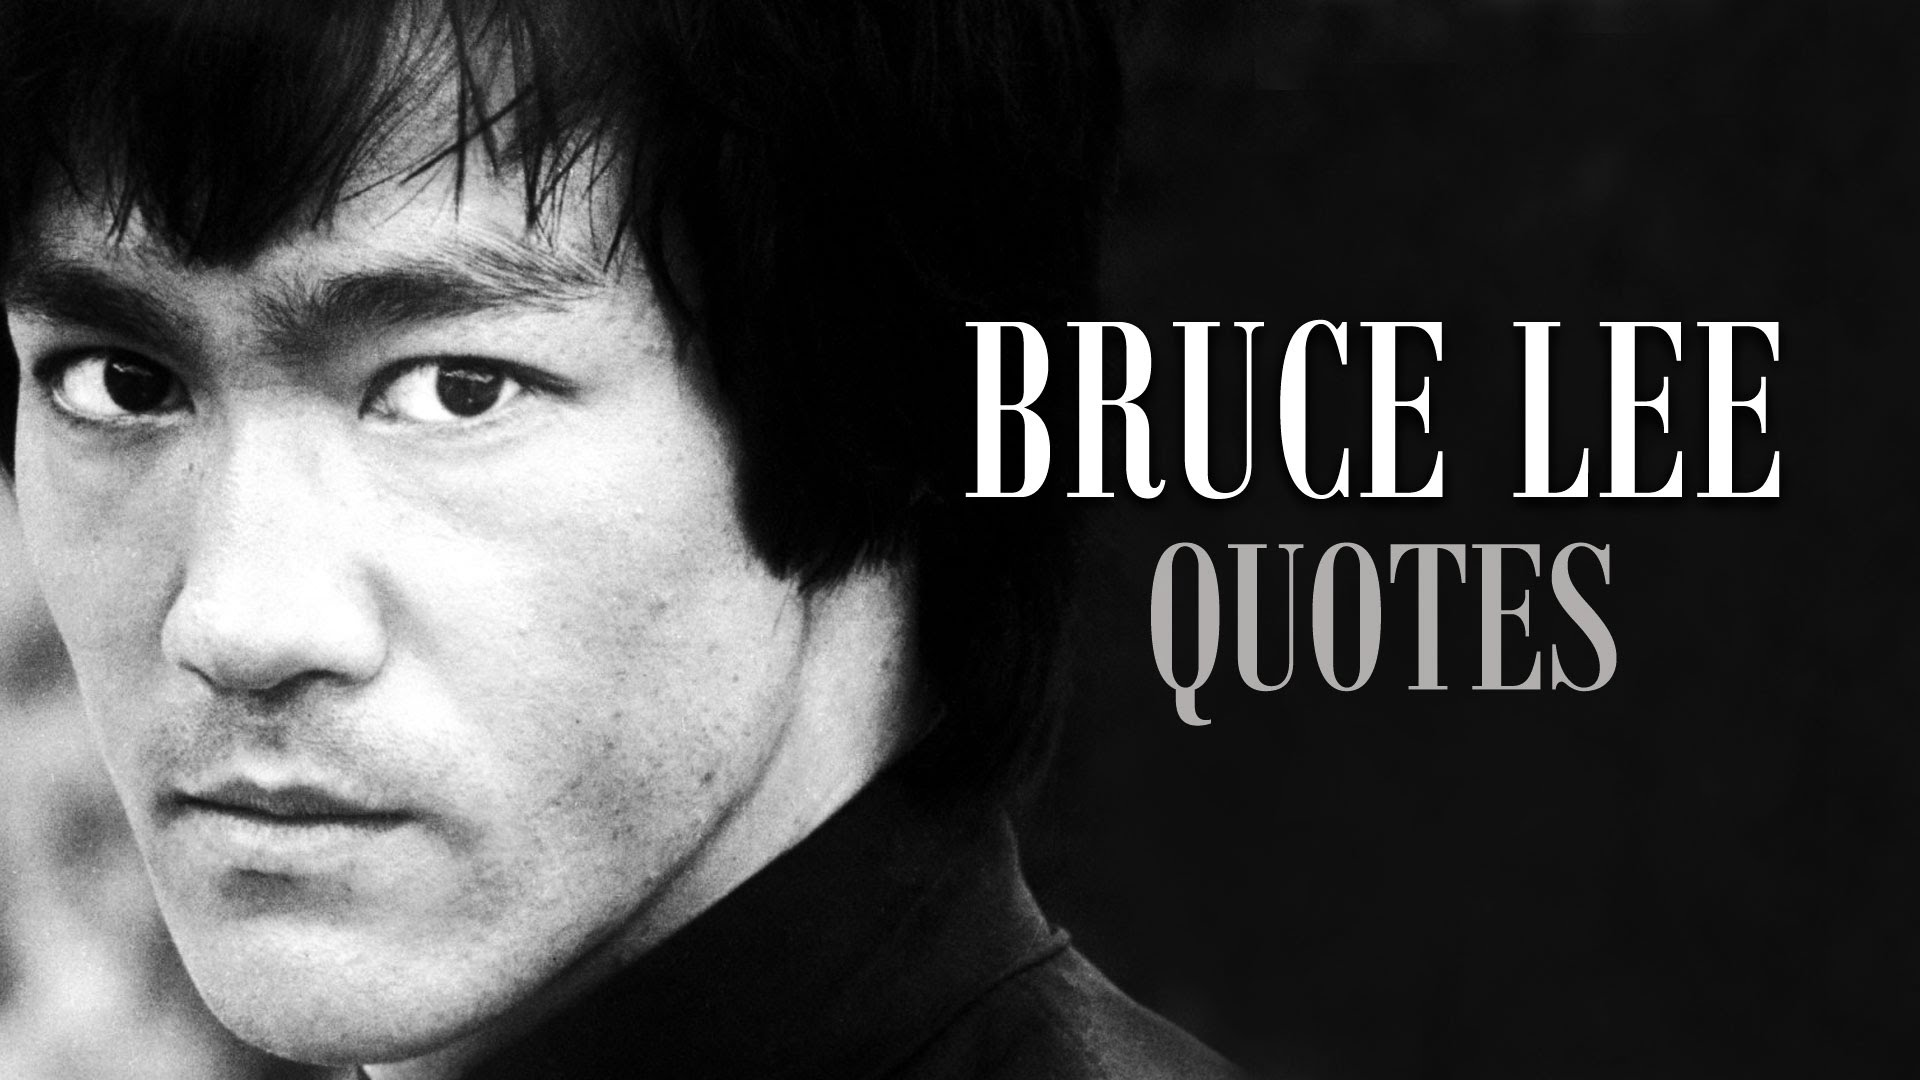 Bruce Lee Philosophy - Bruce Jun Fan Lee was born in the hour of the Dragon, between 6 and 8 a.m., in the year of the Dragon on November 27, 1940, at the Jackson Street Hospital in San Francisco's Chinatown. At the university, Bruce majored in philosophy. His passion for Gung Fu inspired a desire to delve into the philosophical underpinnings and many of his written essays during those years would relate philosophical principles to certain martial arts techniques. Bruce's art was steeped in a philosophical foundation and did not follow long-held martial art traditions. Instead, it had at its core the ideas of simplicity, directness and personal freedom.